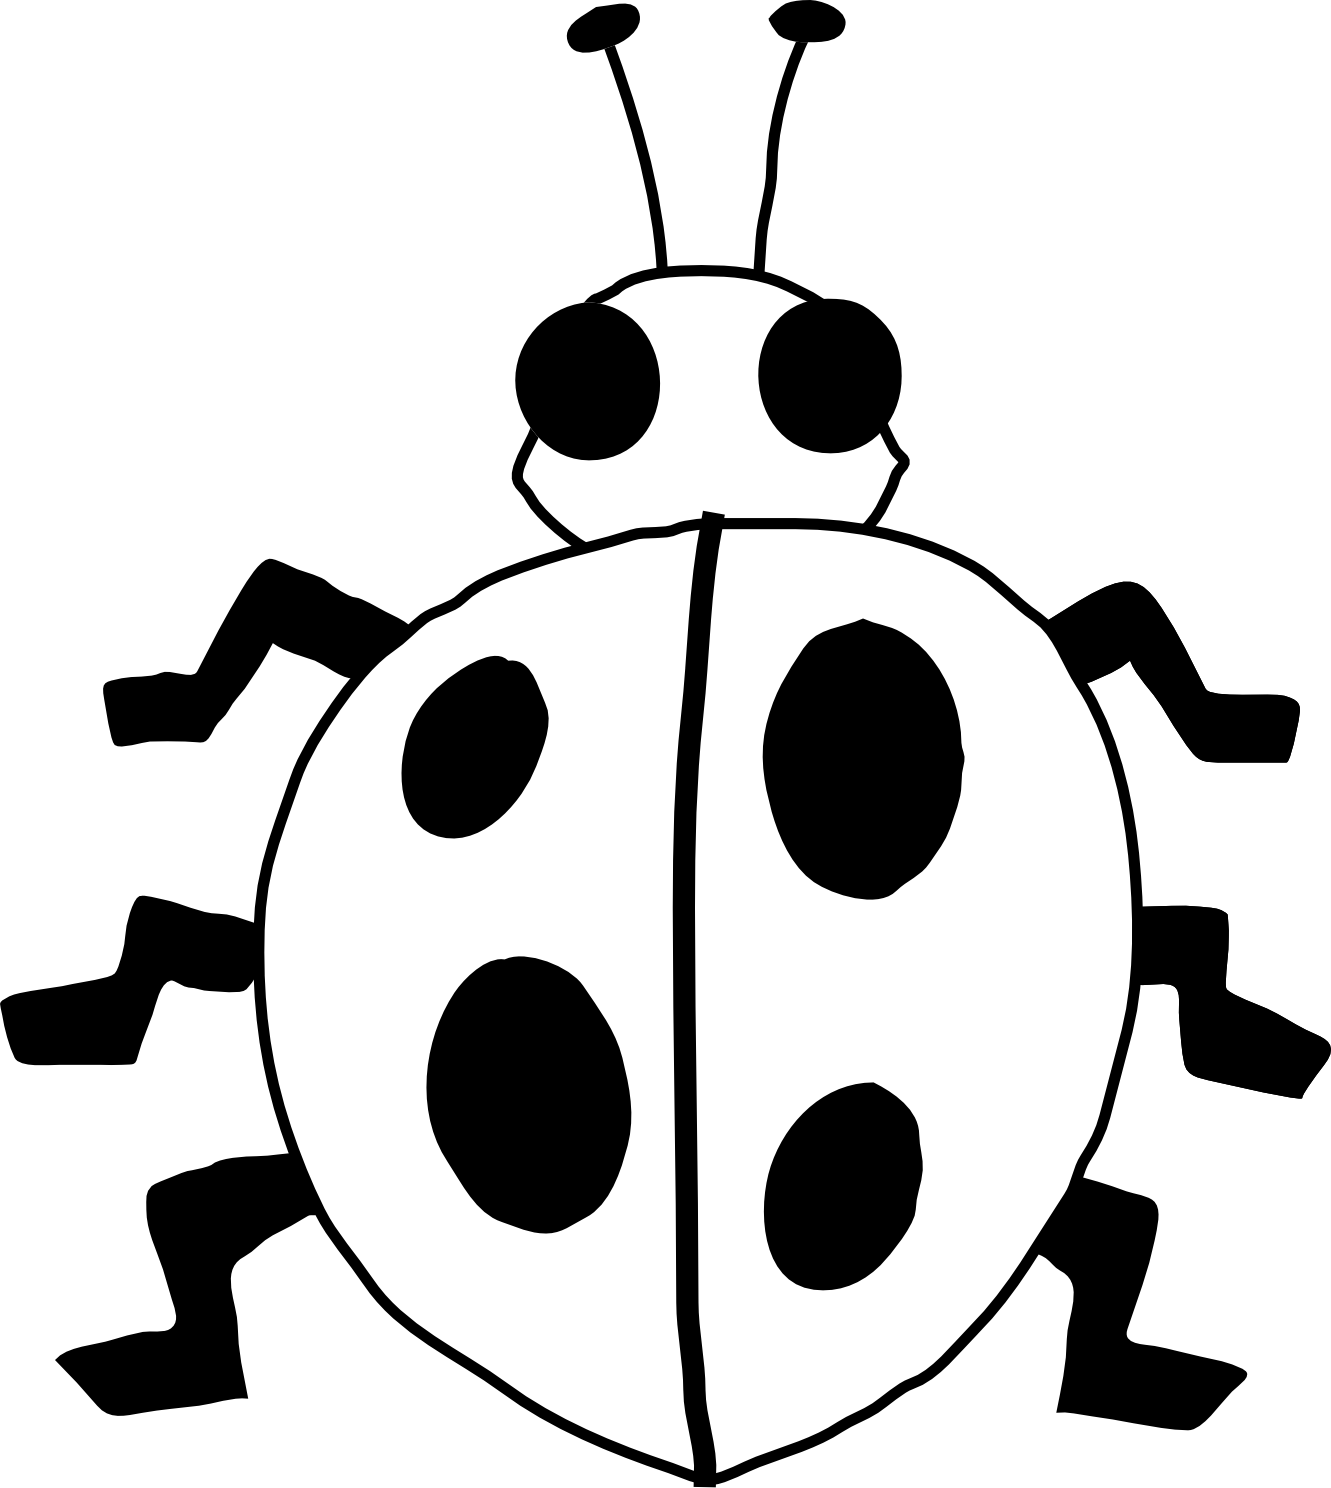 1331x1488 Ladybug Outline Ladybug On Flower Clipart Free Images